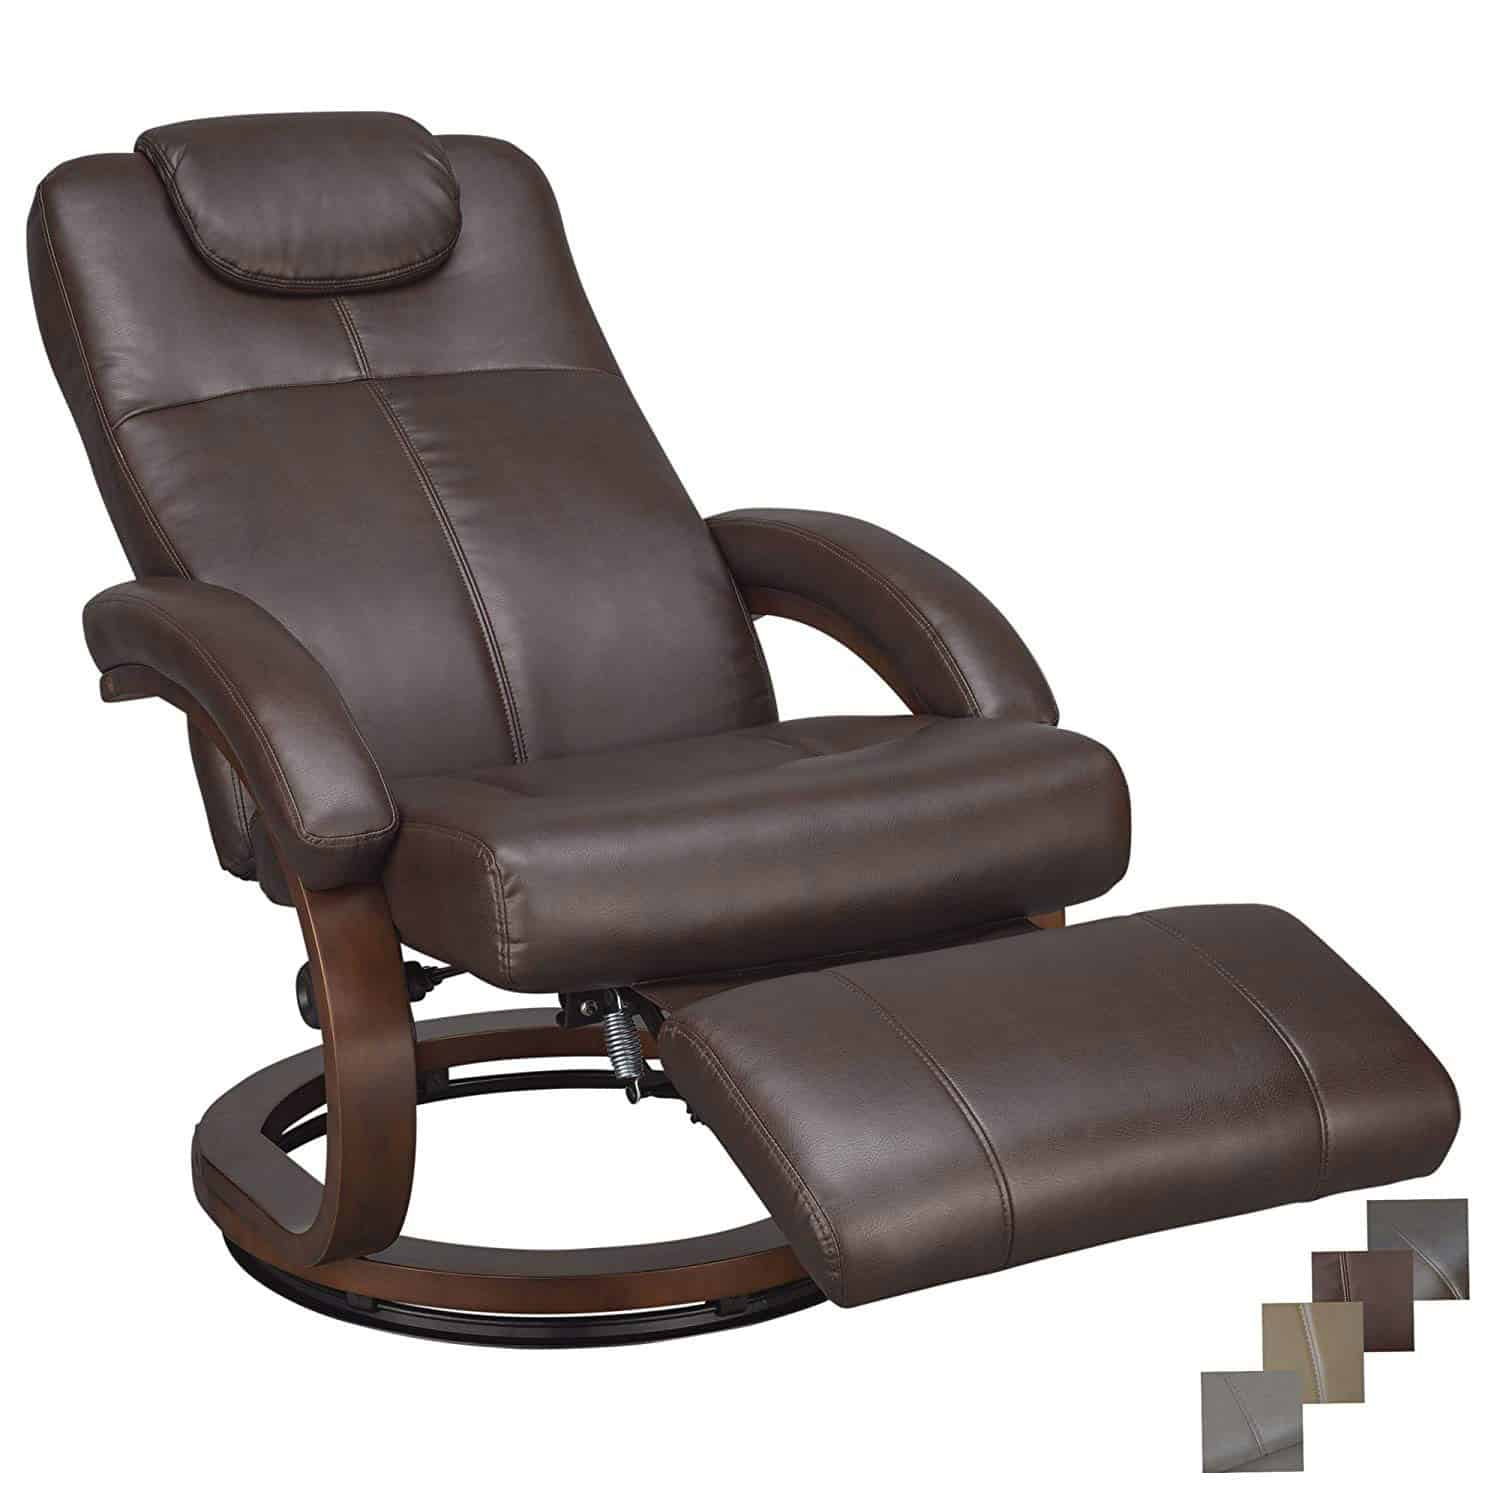 Recpro Charles 28 Quot Rv Euro Chair Recliner Home Design